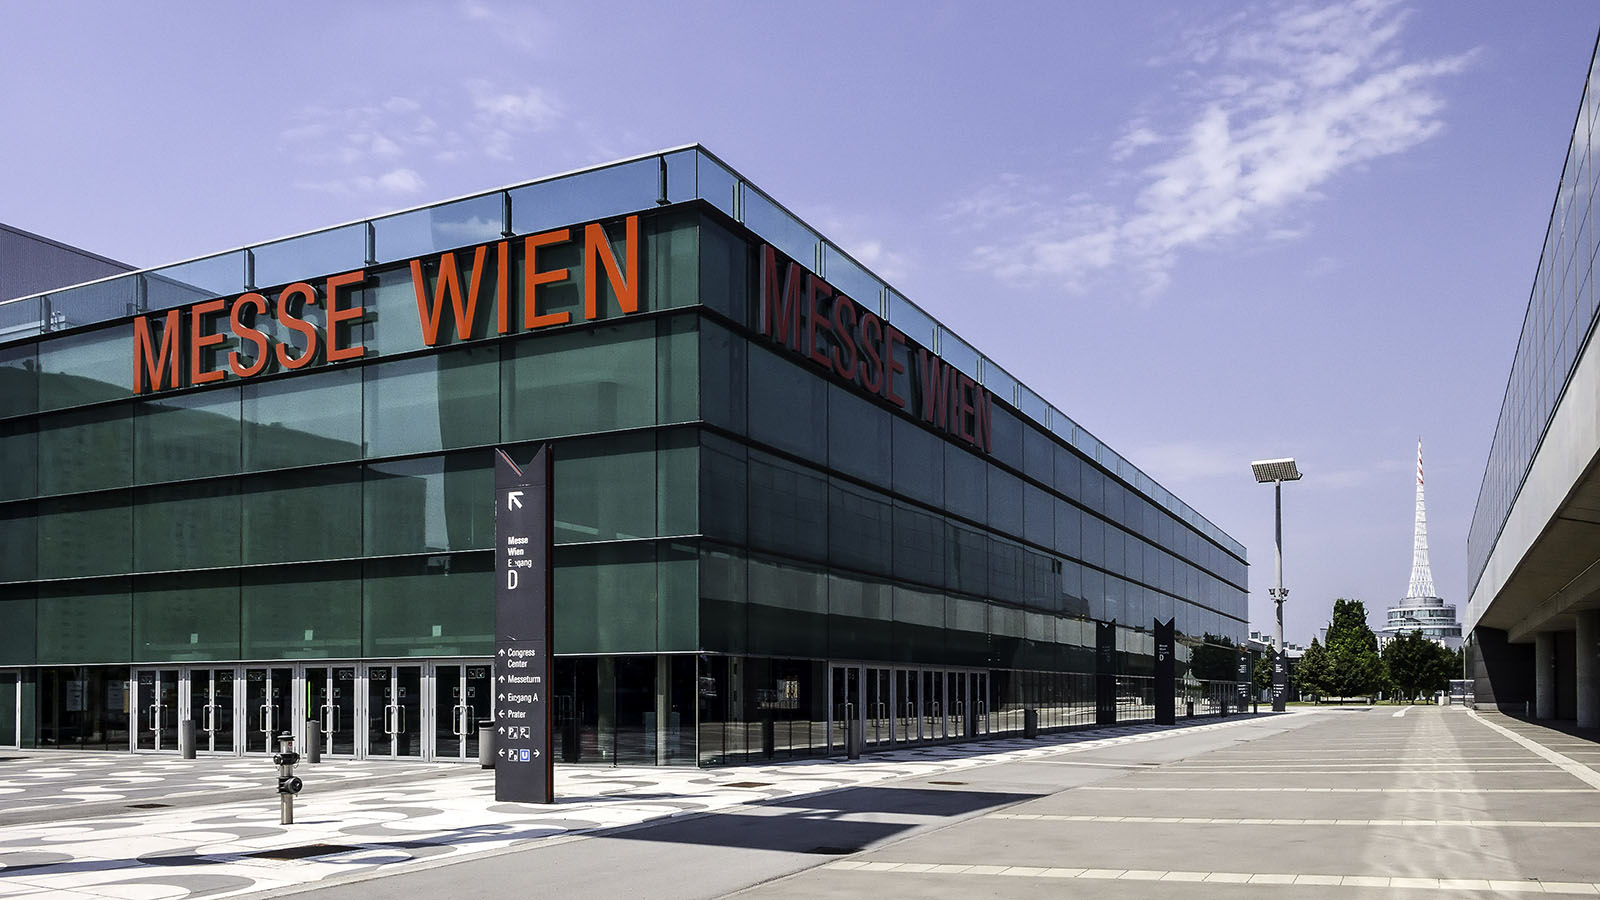 The Messe Wien Exhibition Congress Center.